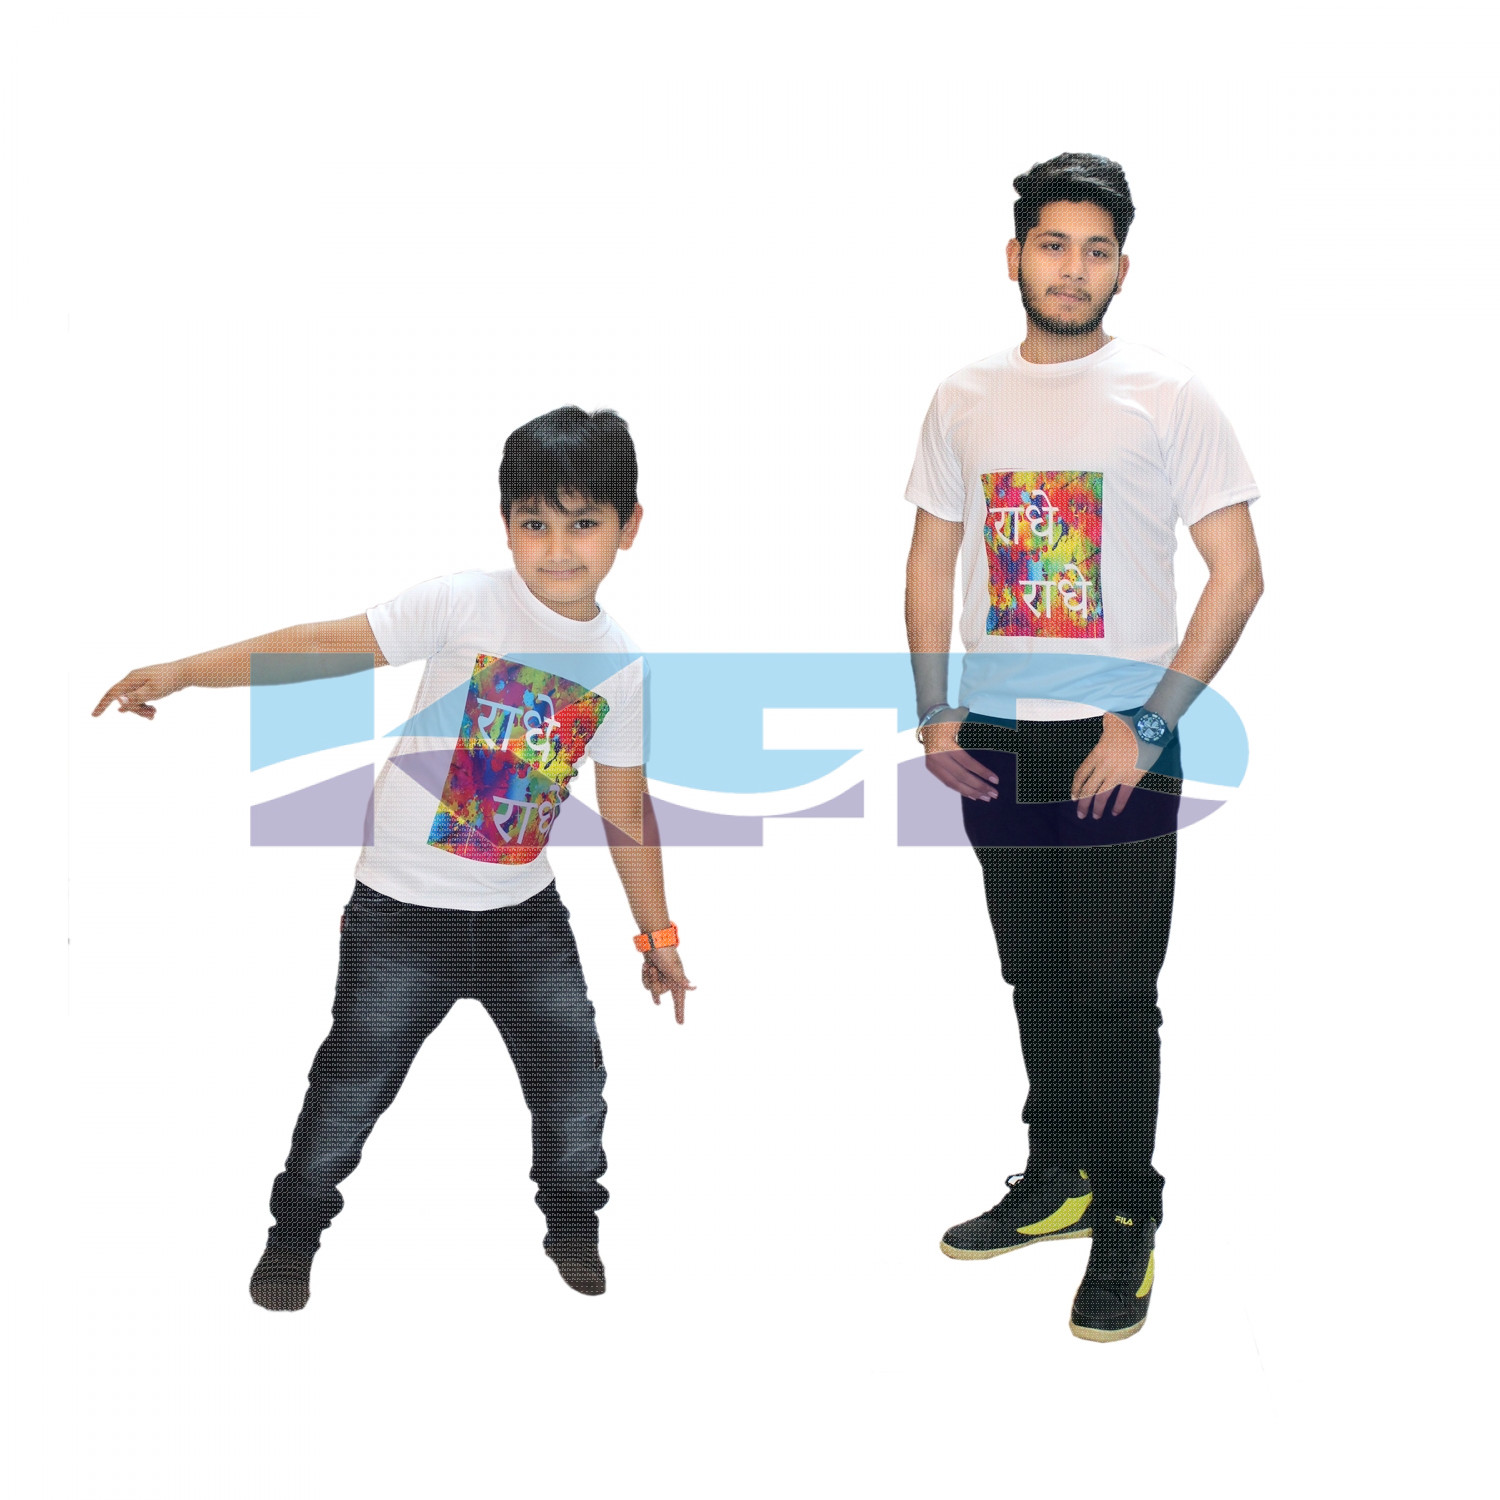 Radhe T-shirt Costume For Kids/Holi day/School Annual function/Theme Party/Competition/Stage Shows/Birthday Party Dress